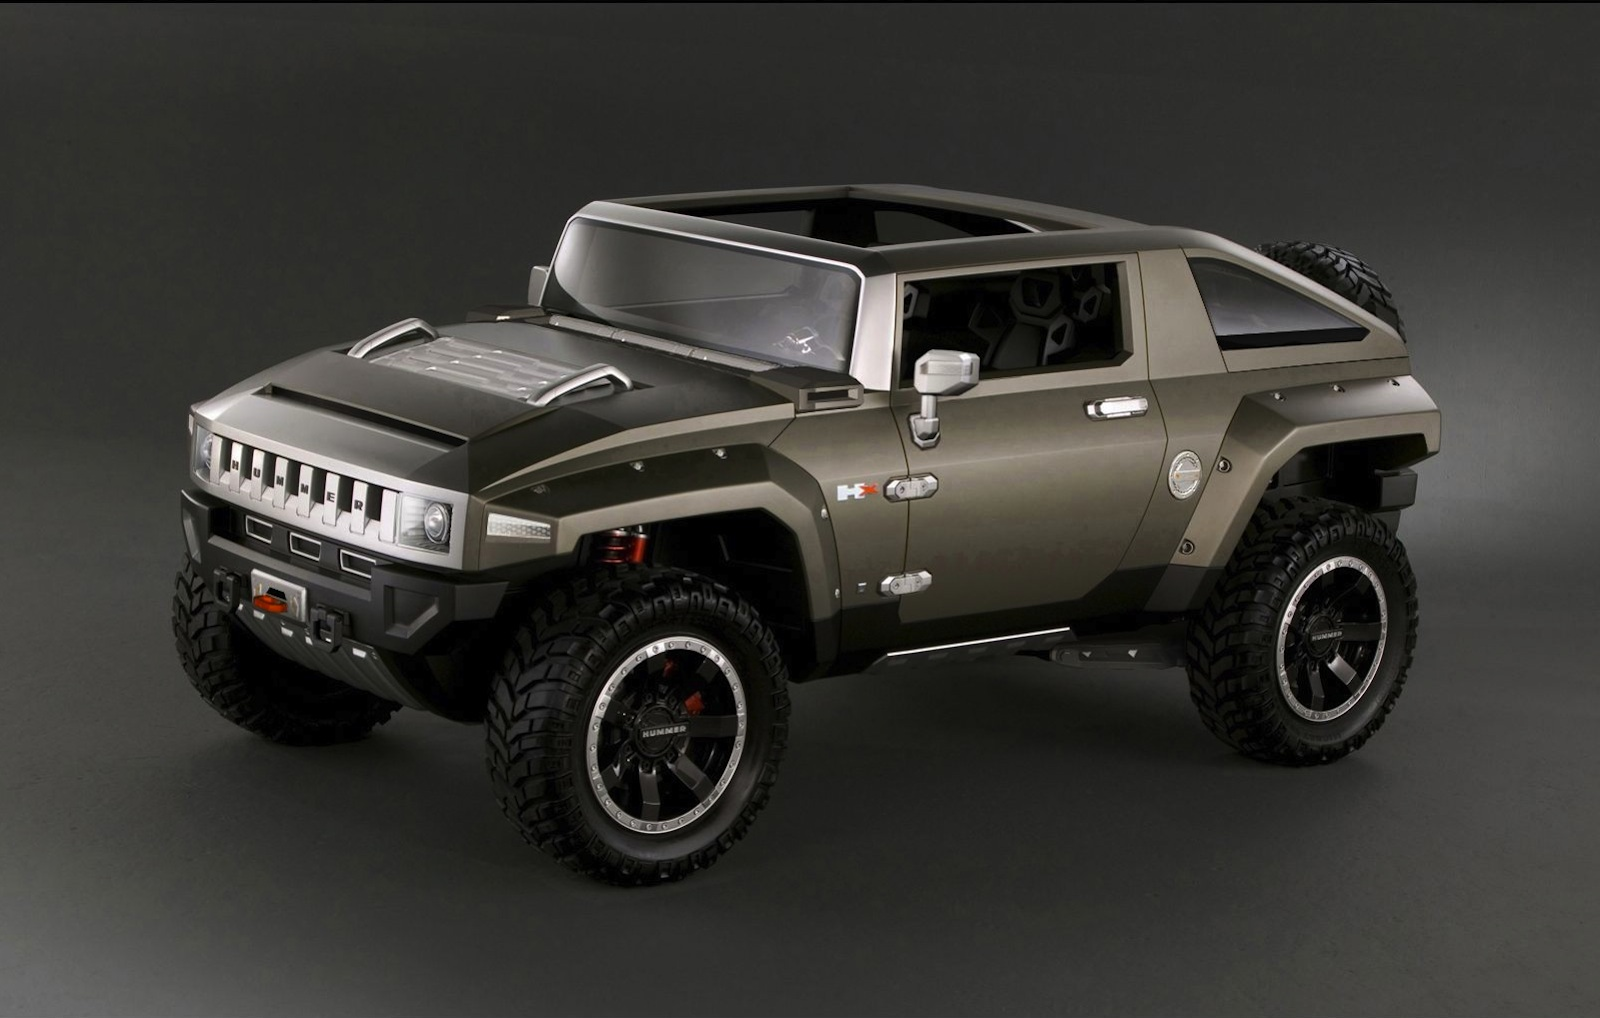 gmc considering a jeep wrangler rival that looks like a hummer motoroids. Black Bedroom Furniture Sets. Home Design Ideas